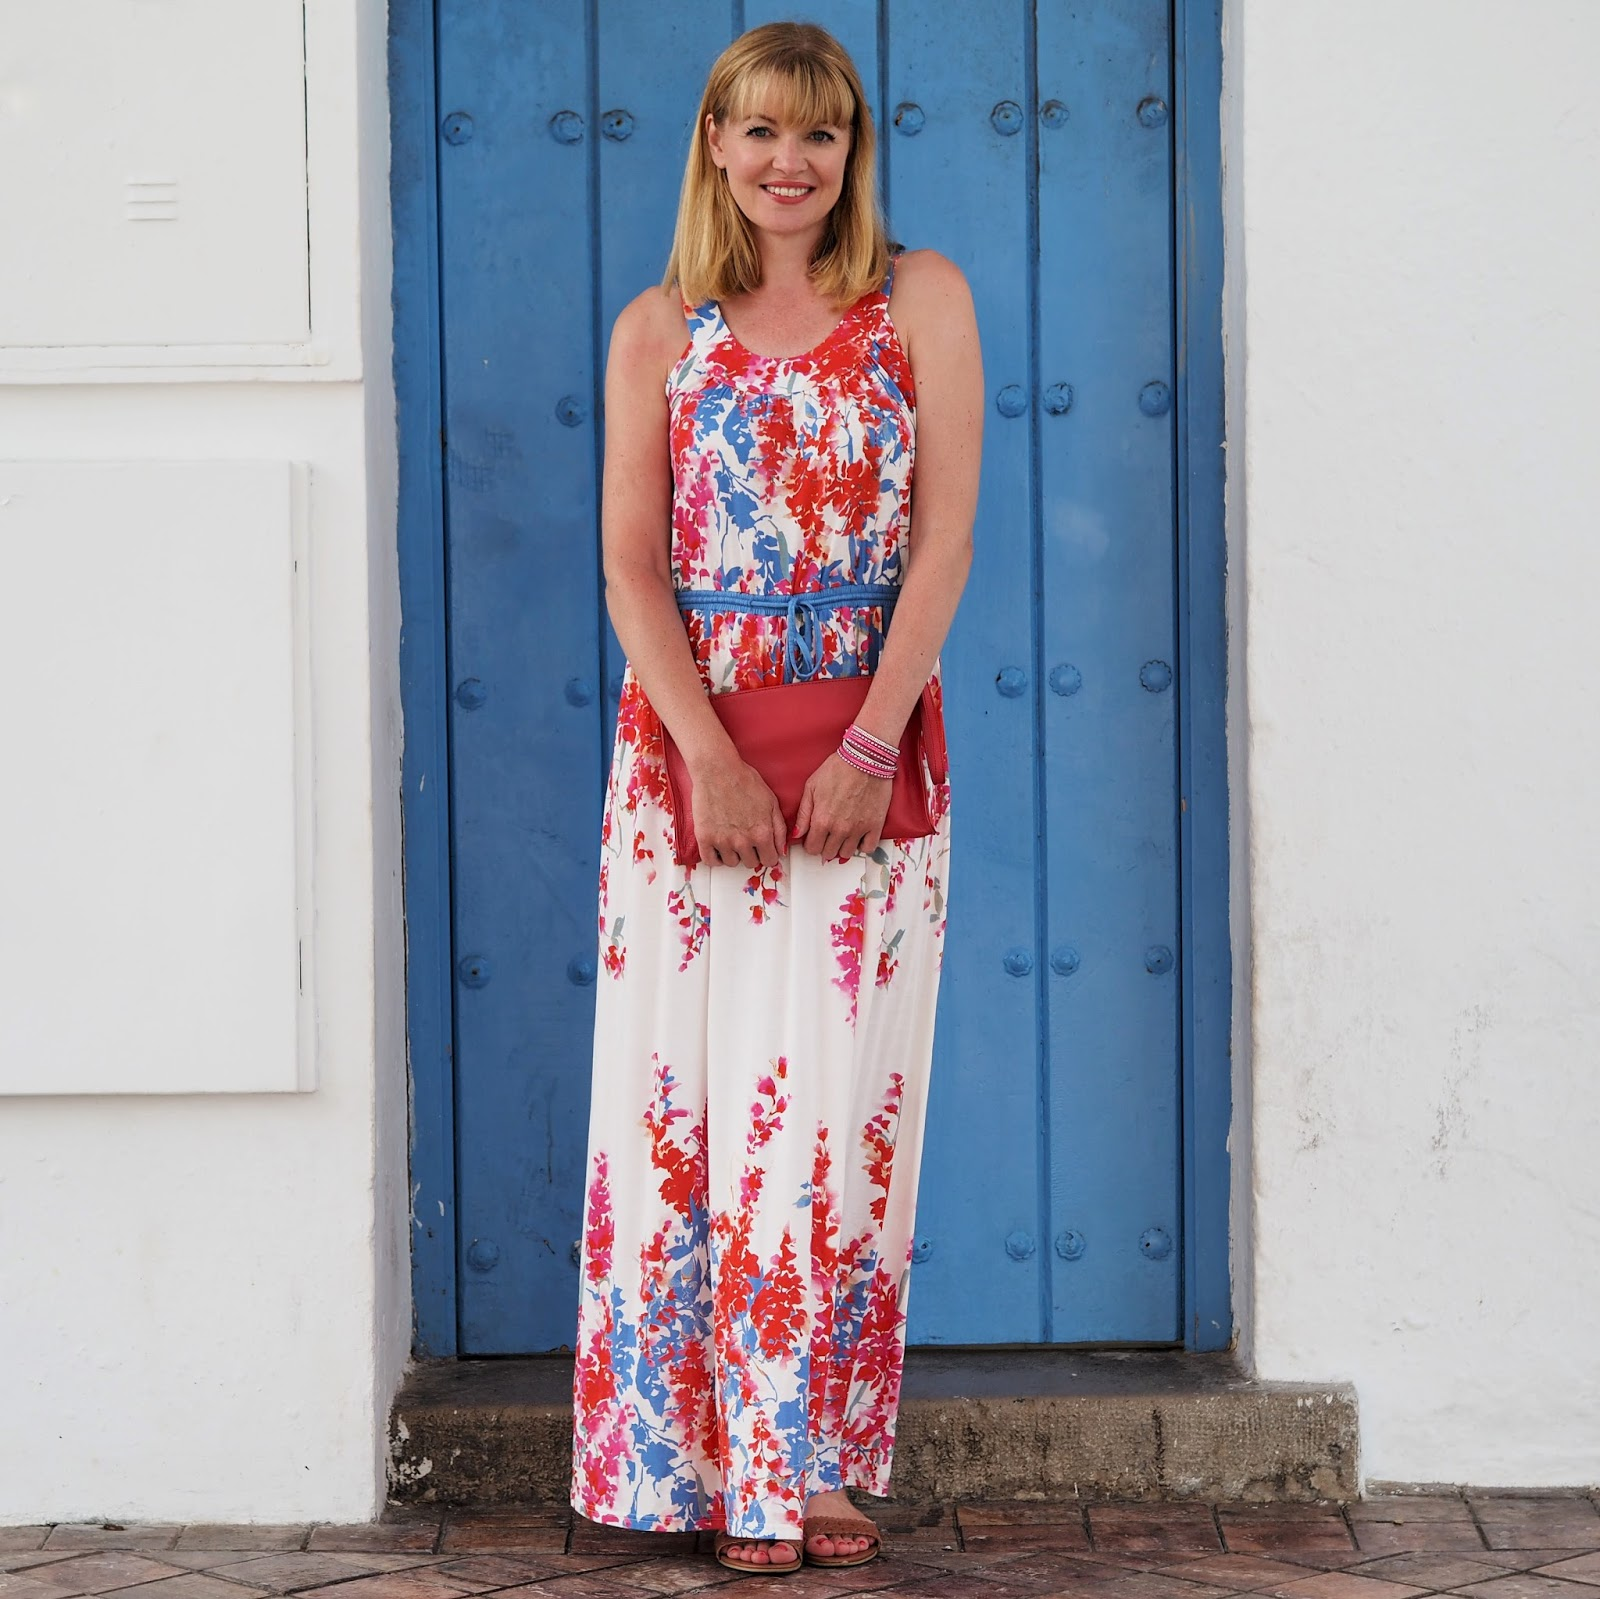 Braintree eco-fashion multi-coloured floral maxi dress. Nerja